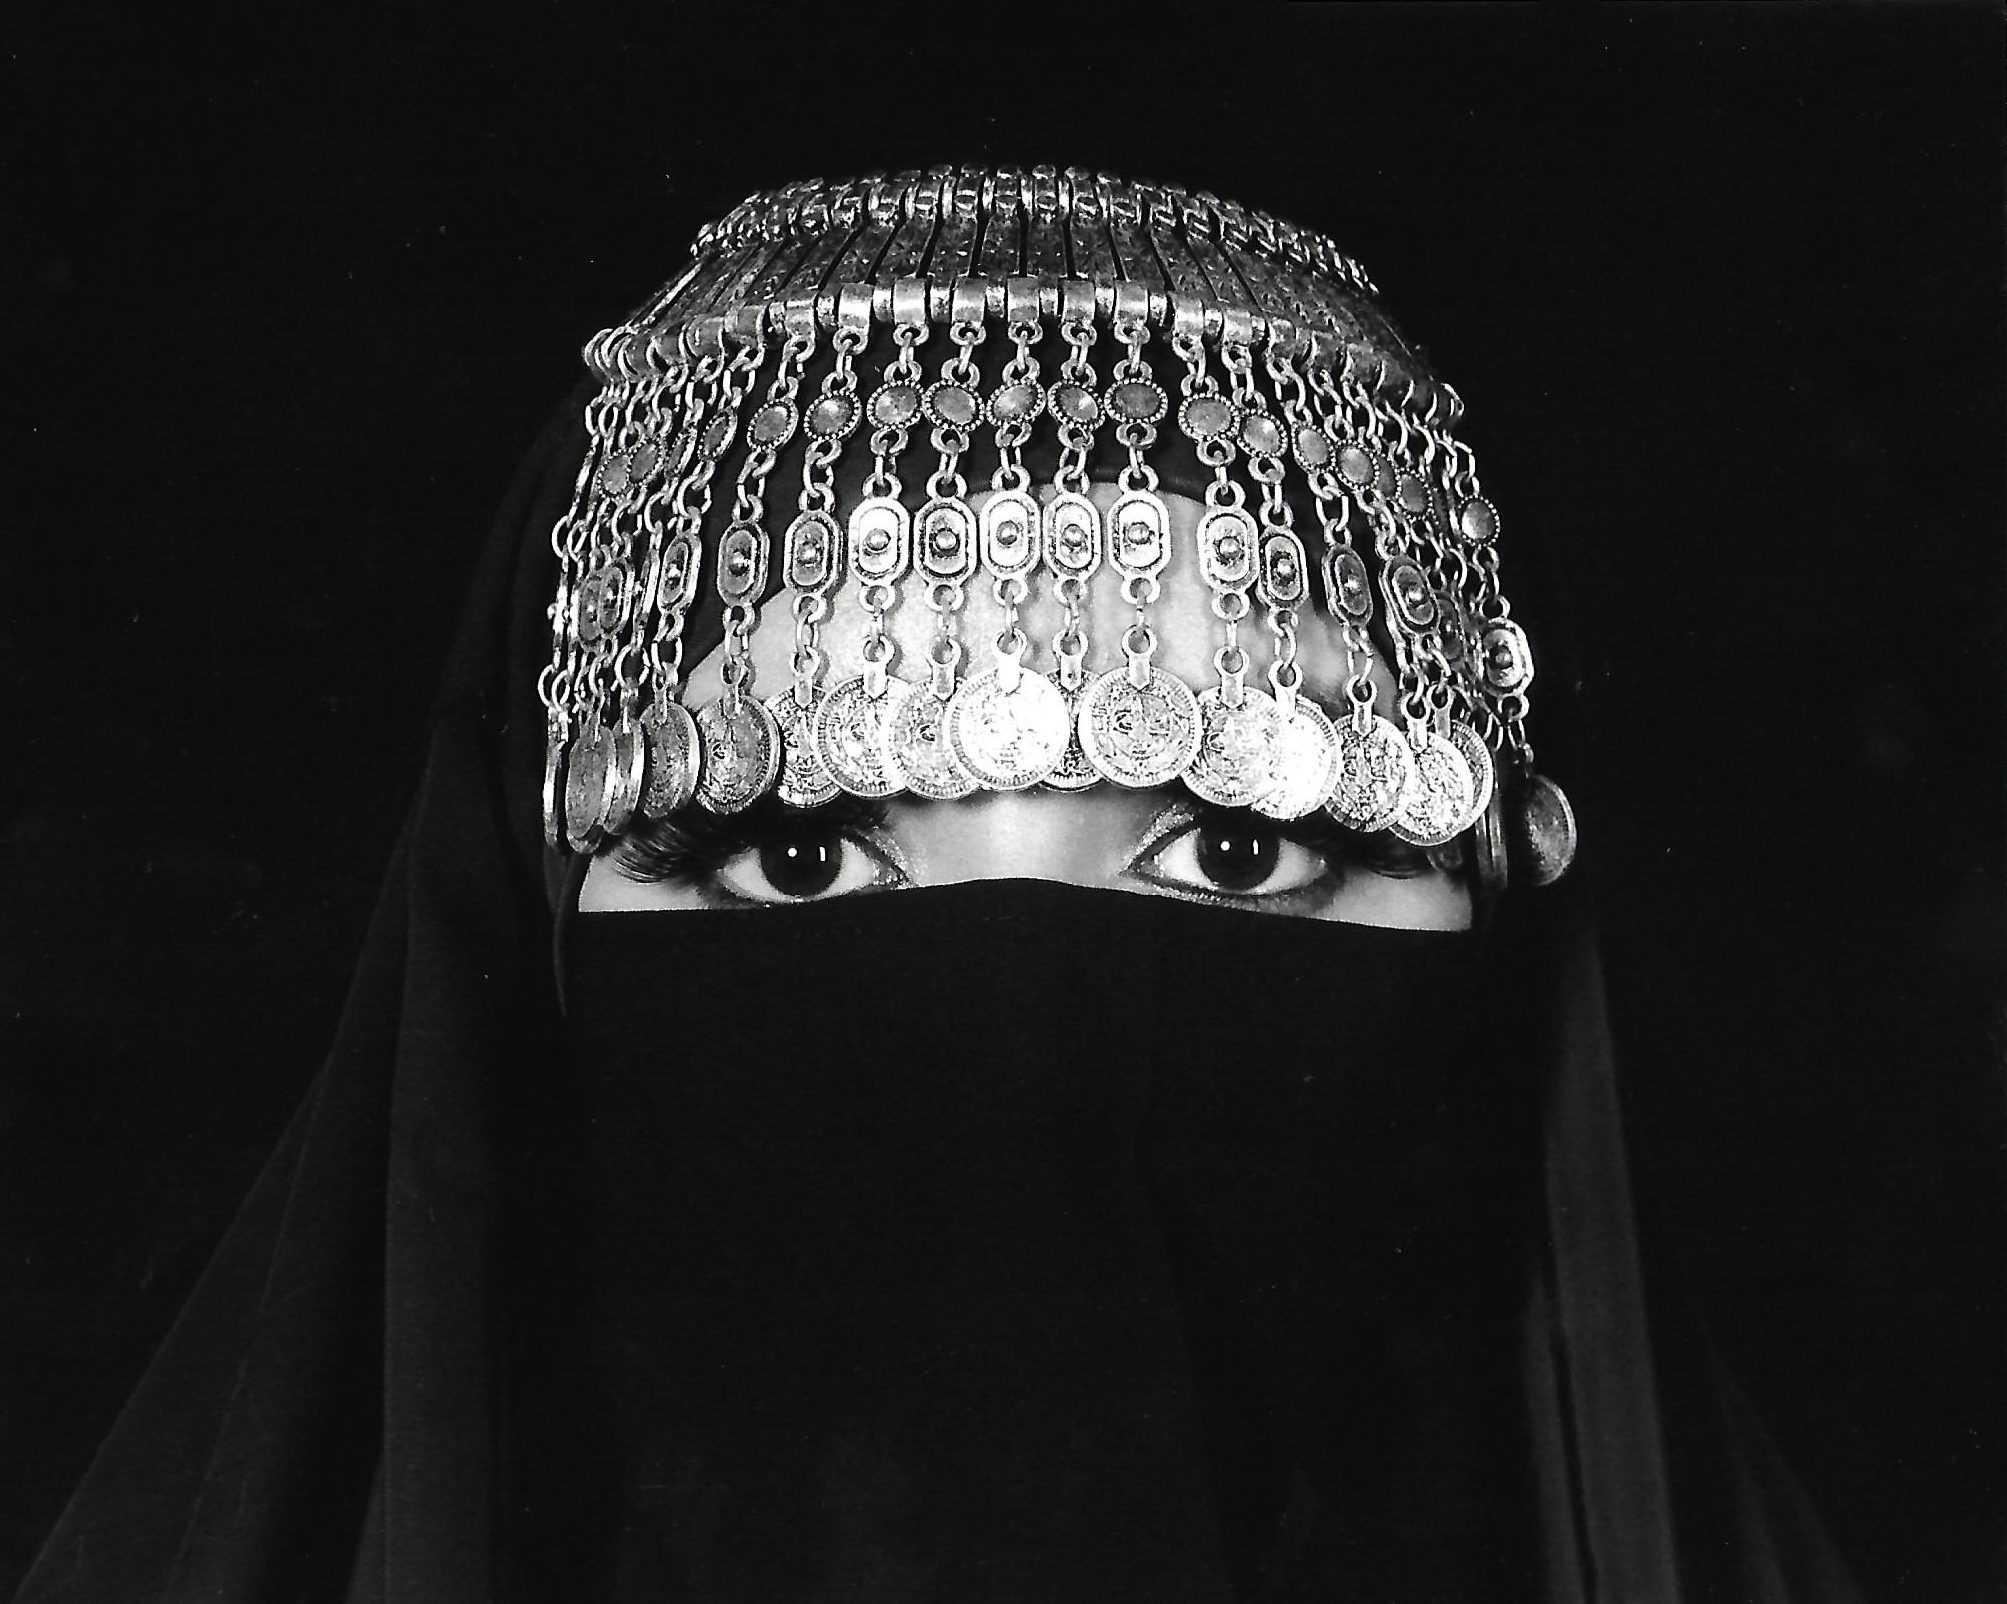 Sheima Touhkal - Runner Up inf the ILFORD Photo Student competition 2019